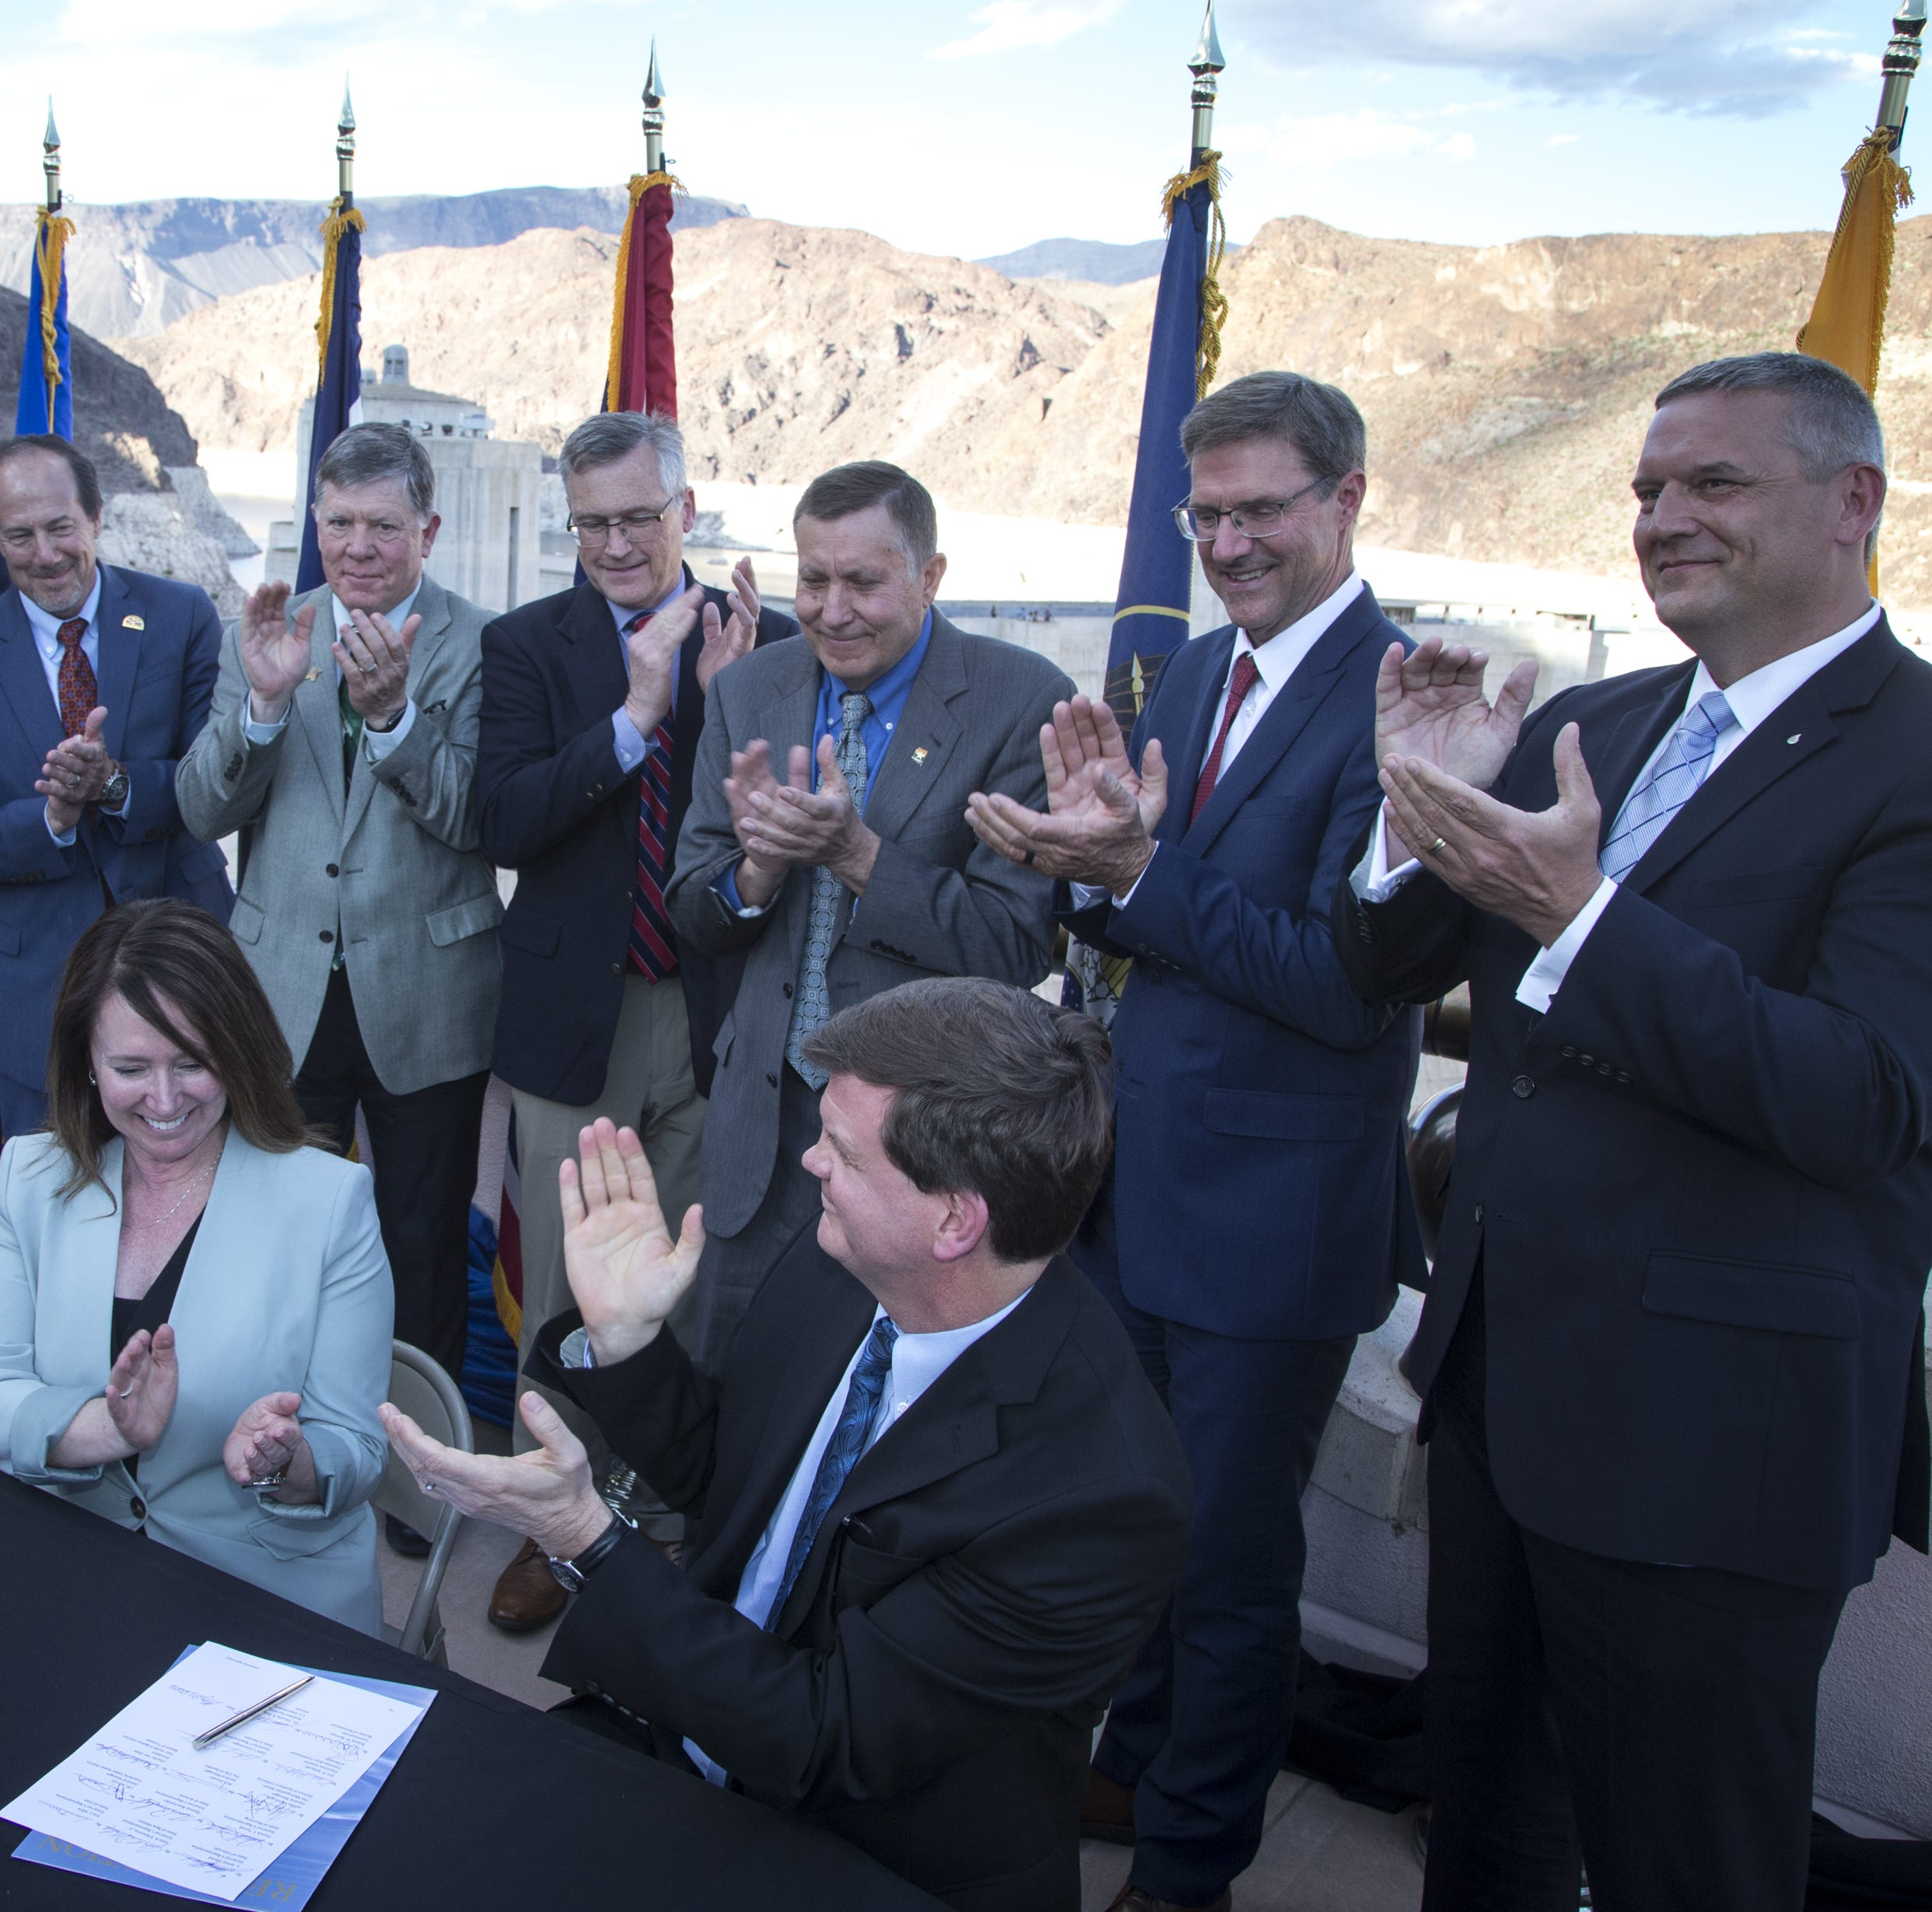 Dr. Tim Petty (right, Department of the Interior Assistant Secretary for Water and Science) and Brenda Burman (left, both sitting, Bureau of Reclamation Commissioner) after signing Colorado River Drought Contingency Plan, May 20, 2019, at Hoover Dam, Arizona/Nevada border. Looking on are representatives the from seven Colorado River Basin states, who also signed the plan.